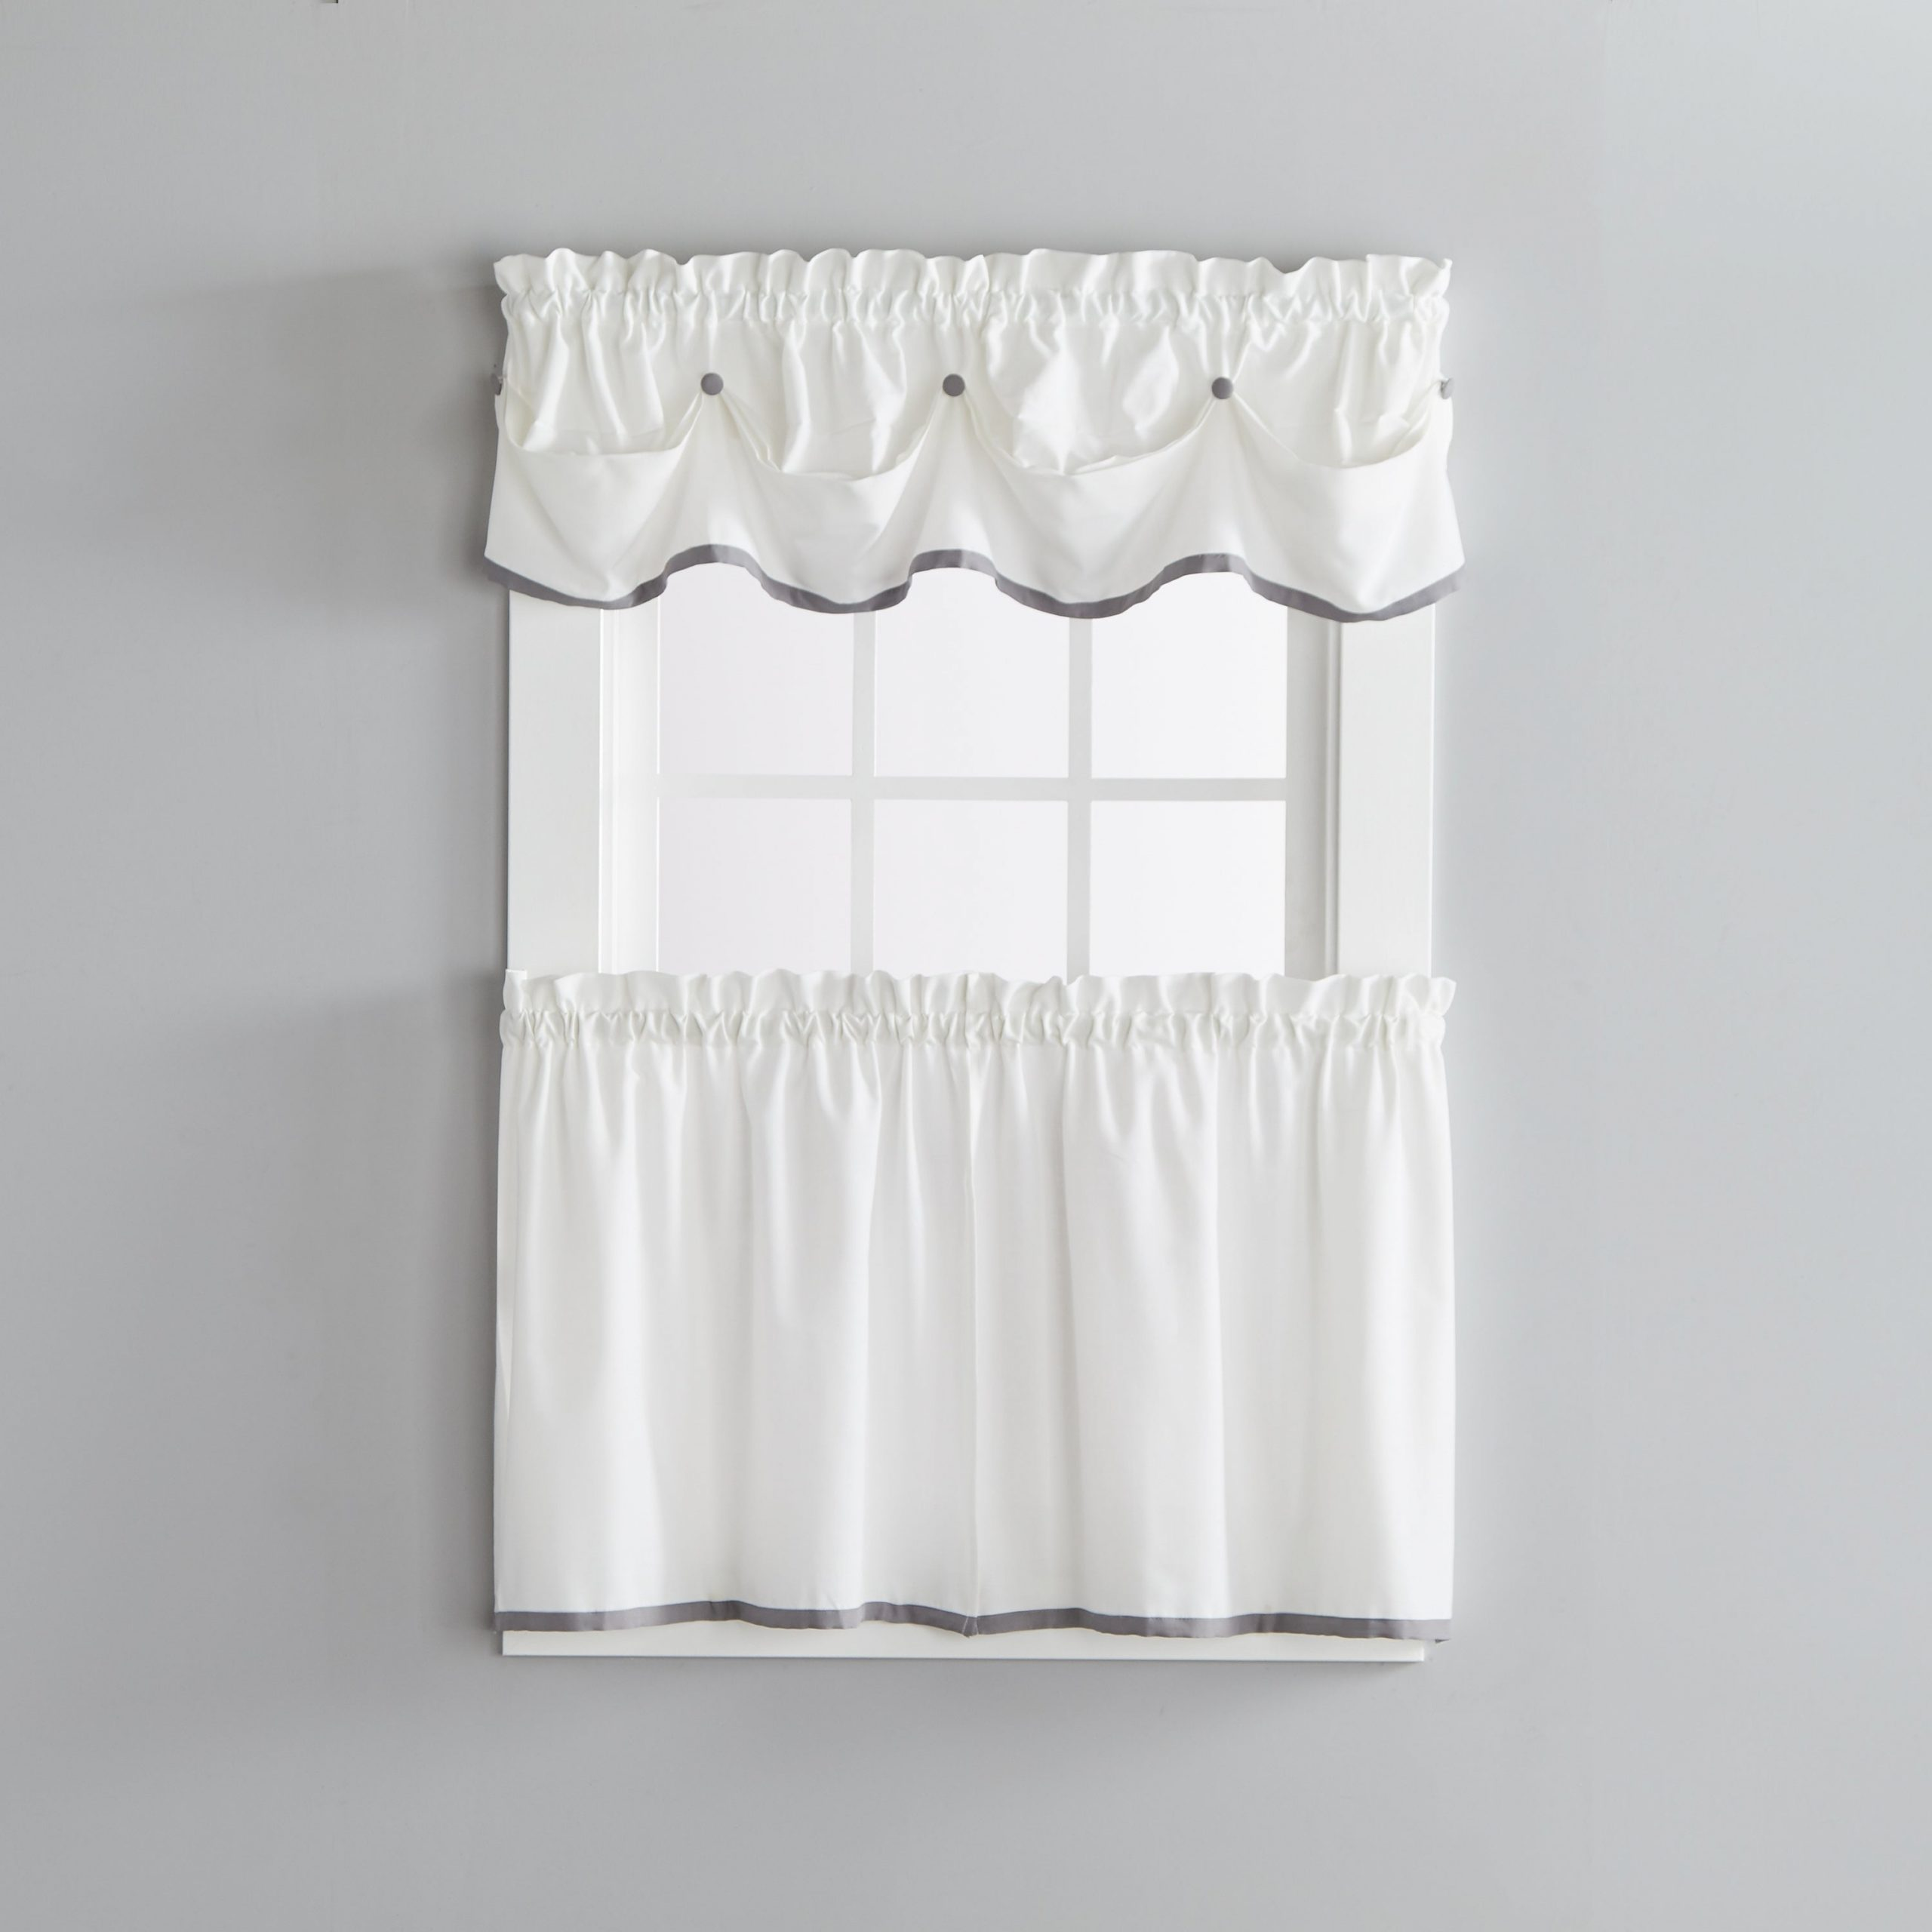 Newest Skl Home Manor 24 Inch Tier Pair In Dove Gray With Regard To Dove Gray Curtain Tier Pairs (View 4 of 20)